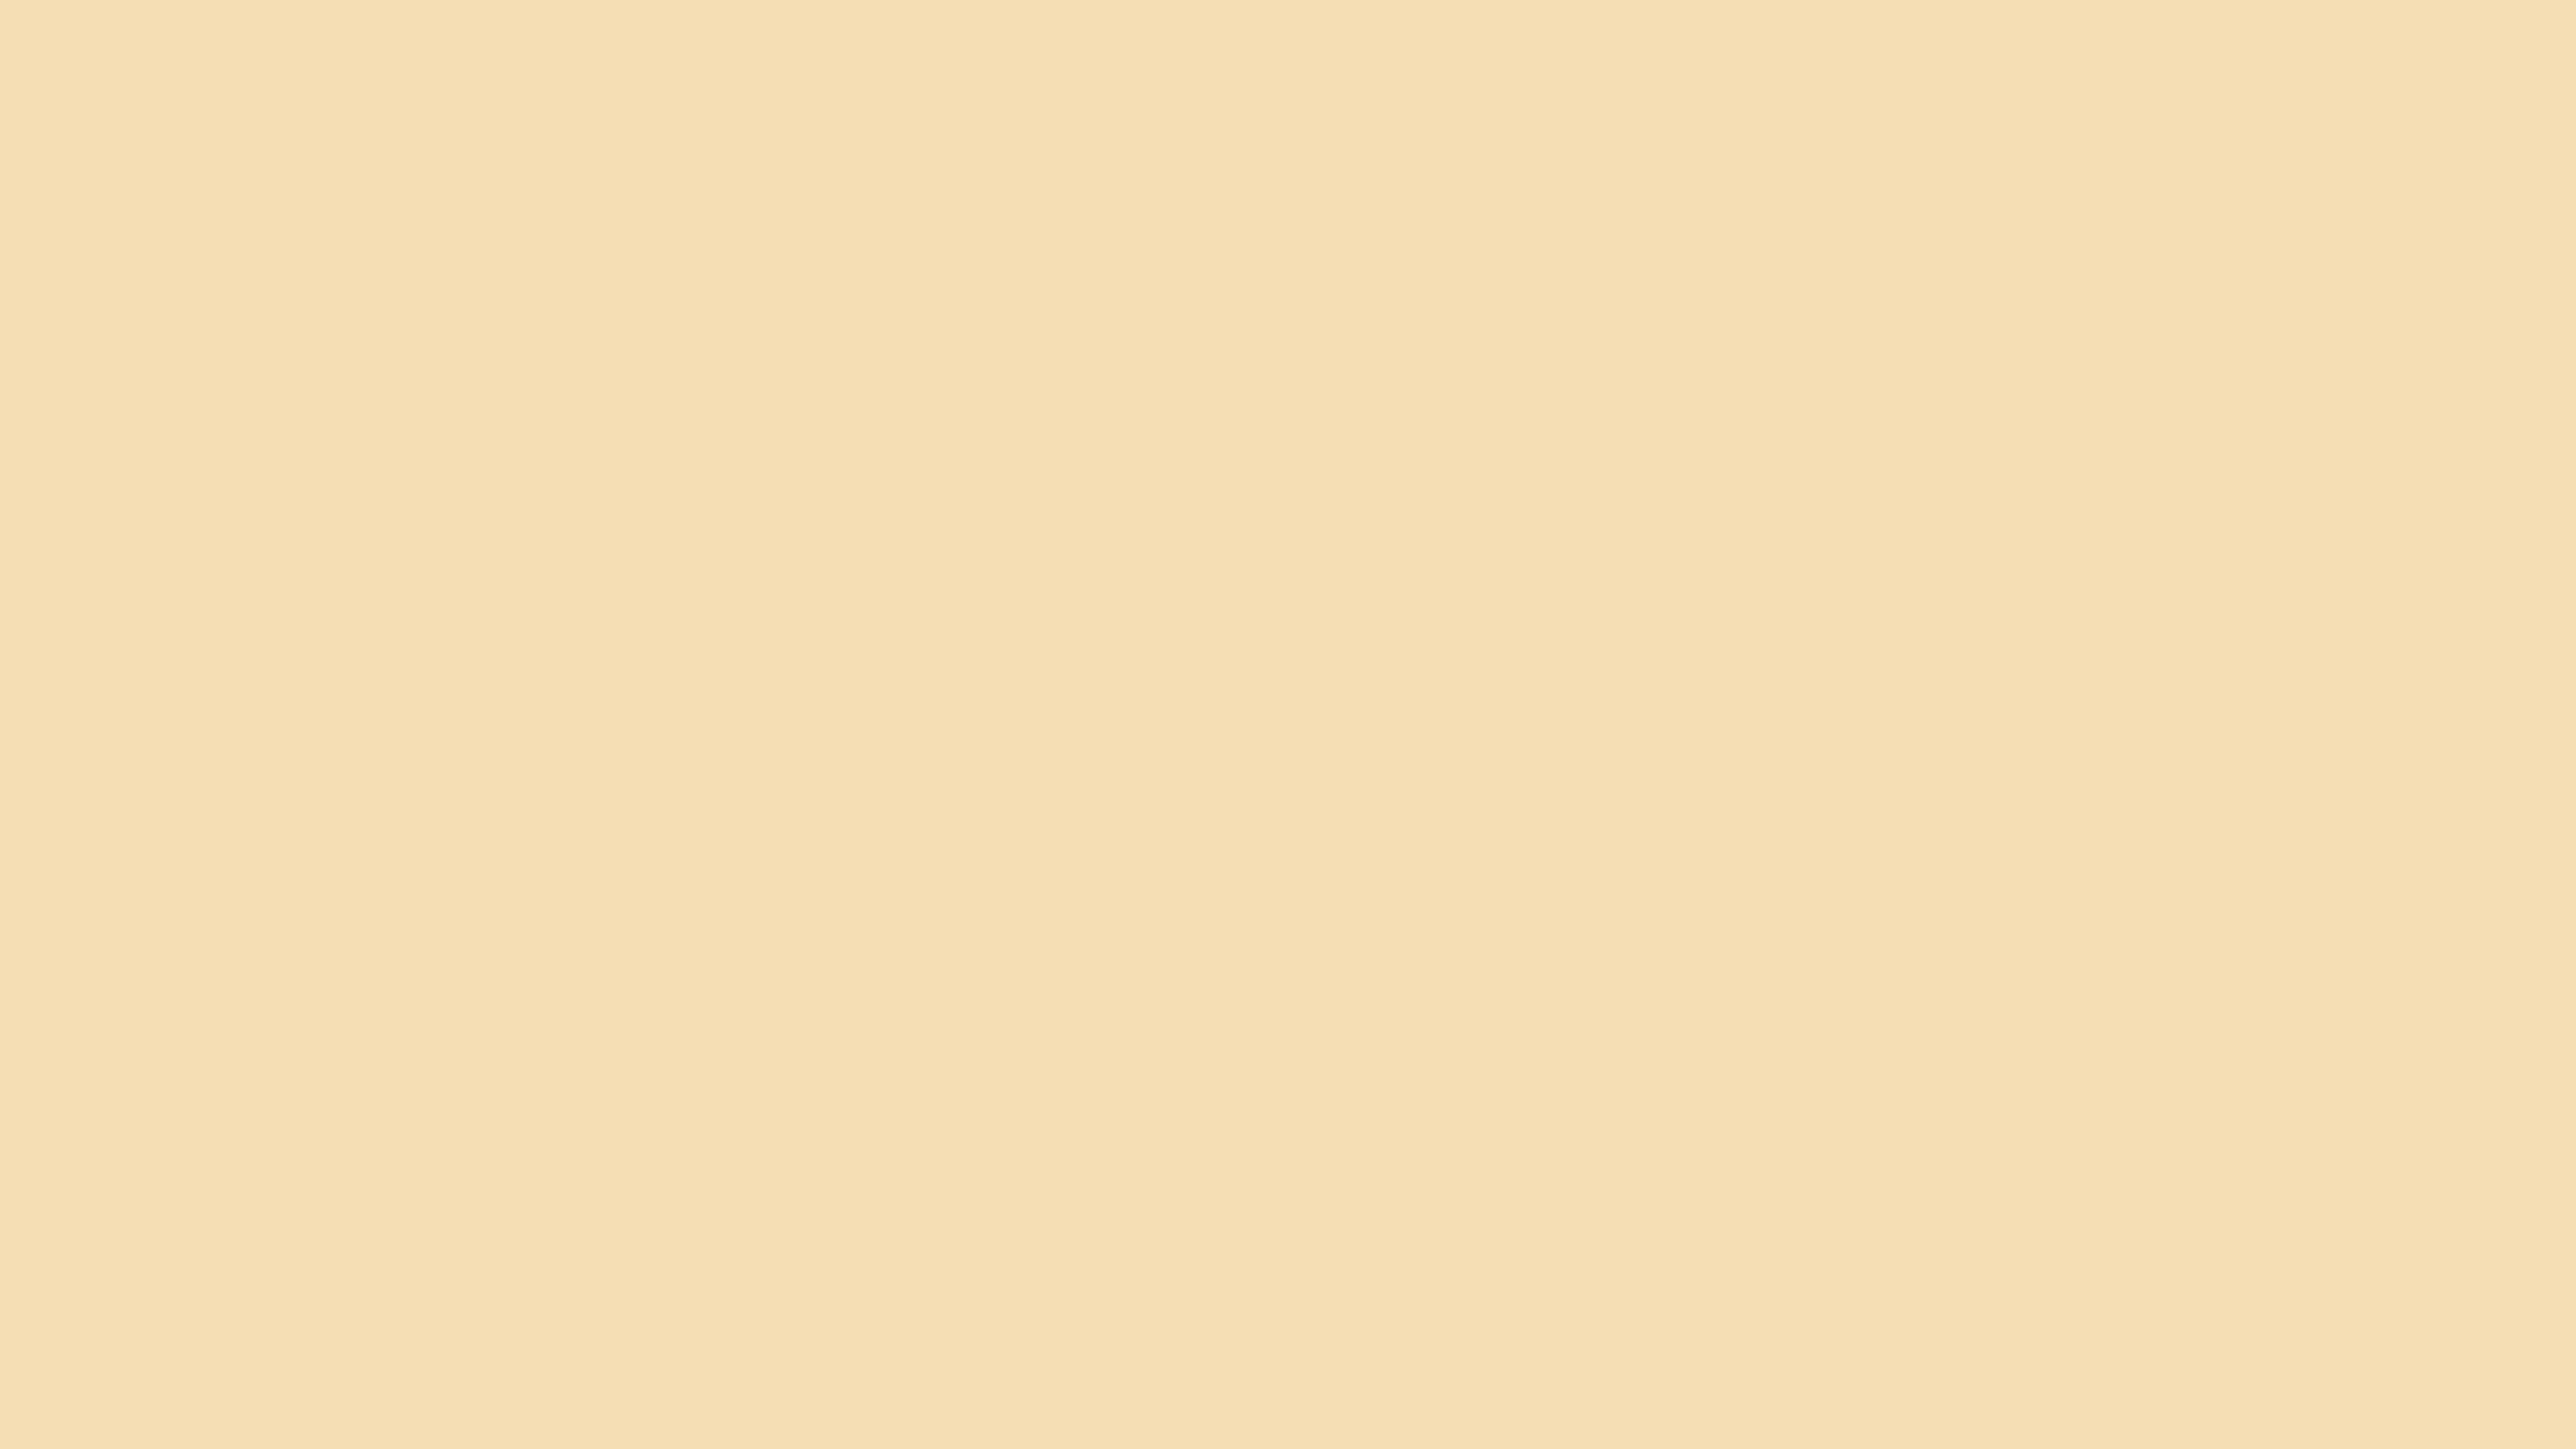 5120x2880 Wheat Solid Color Background